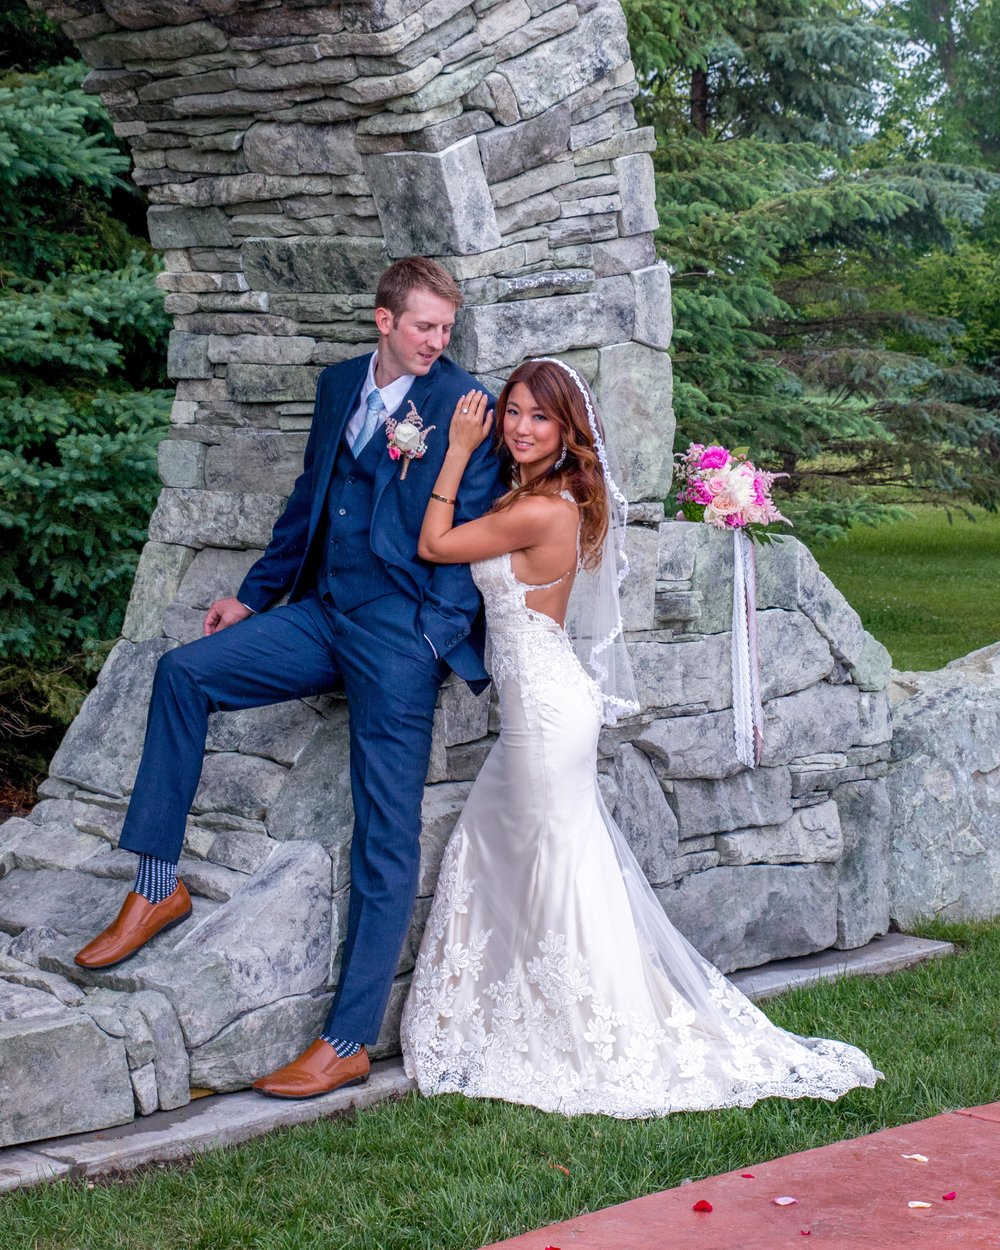 Minnesota Wedding at Glenhaven, outdoor ceremony, Fab Weddings, June wedding